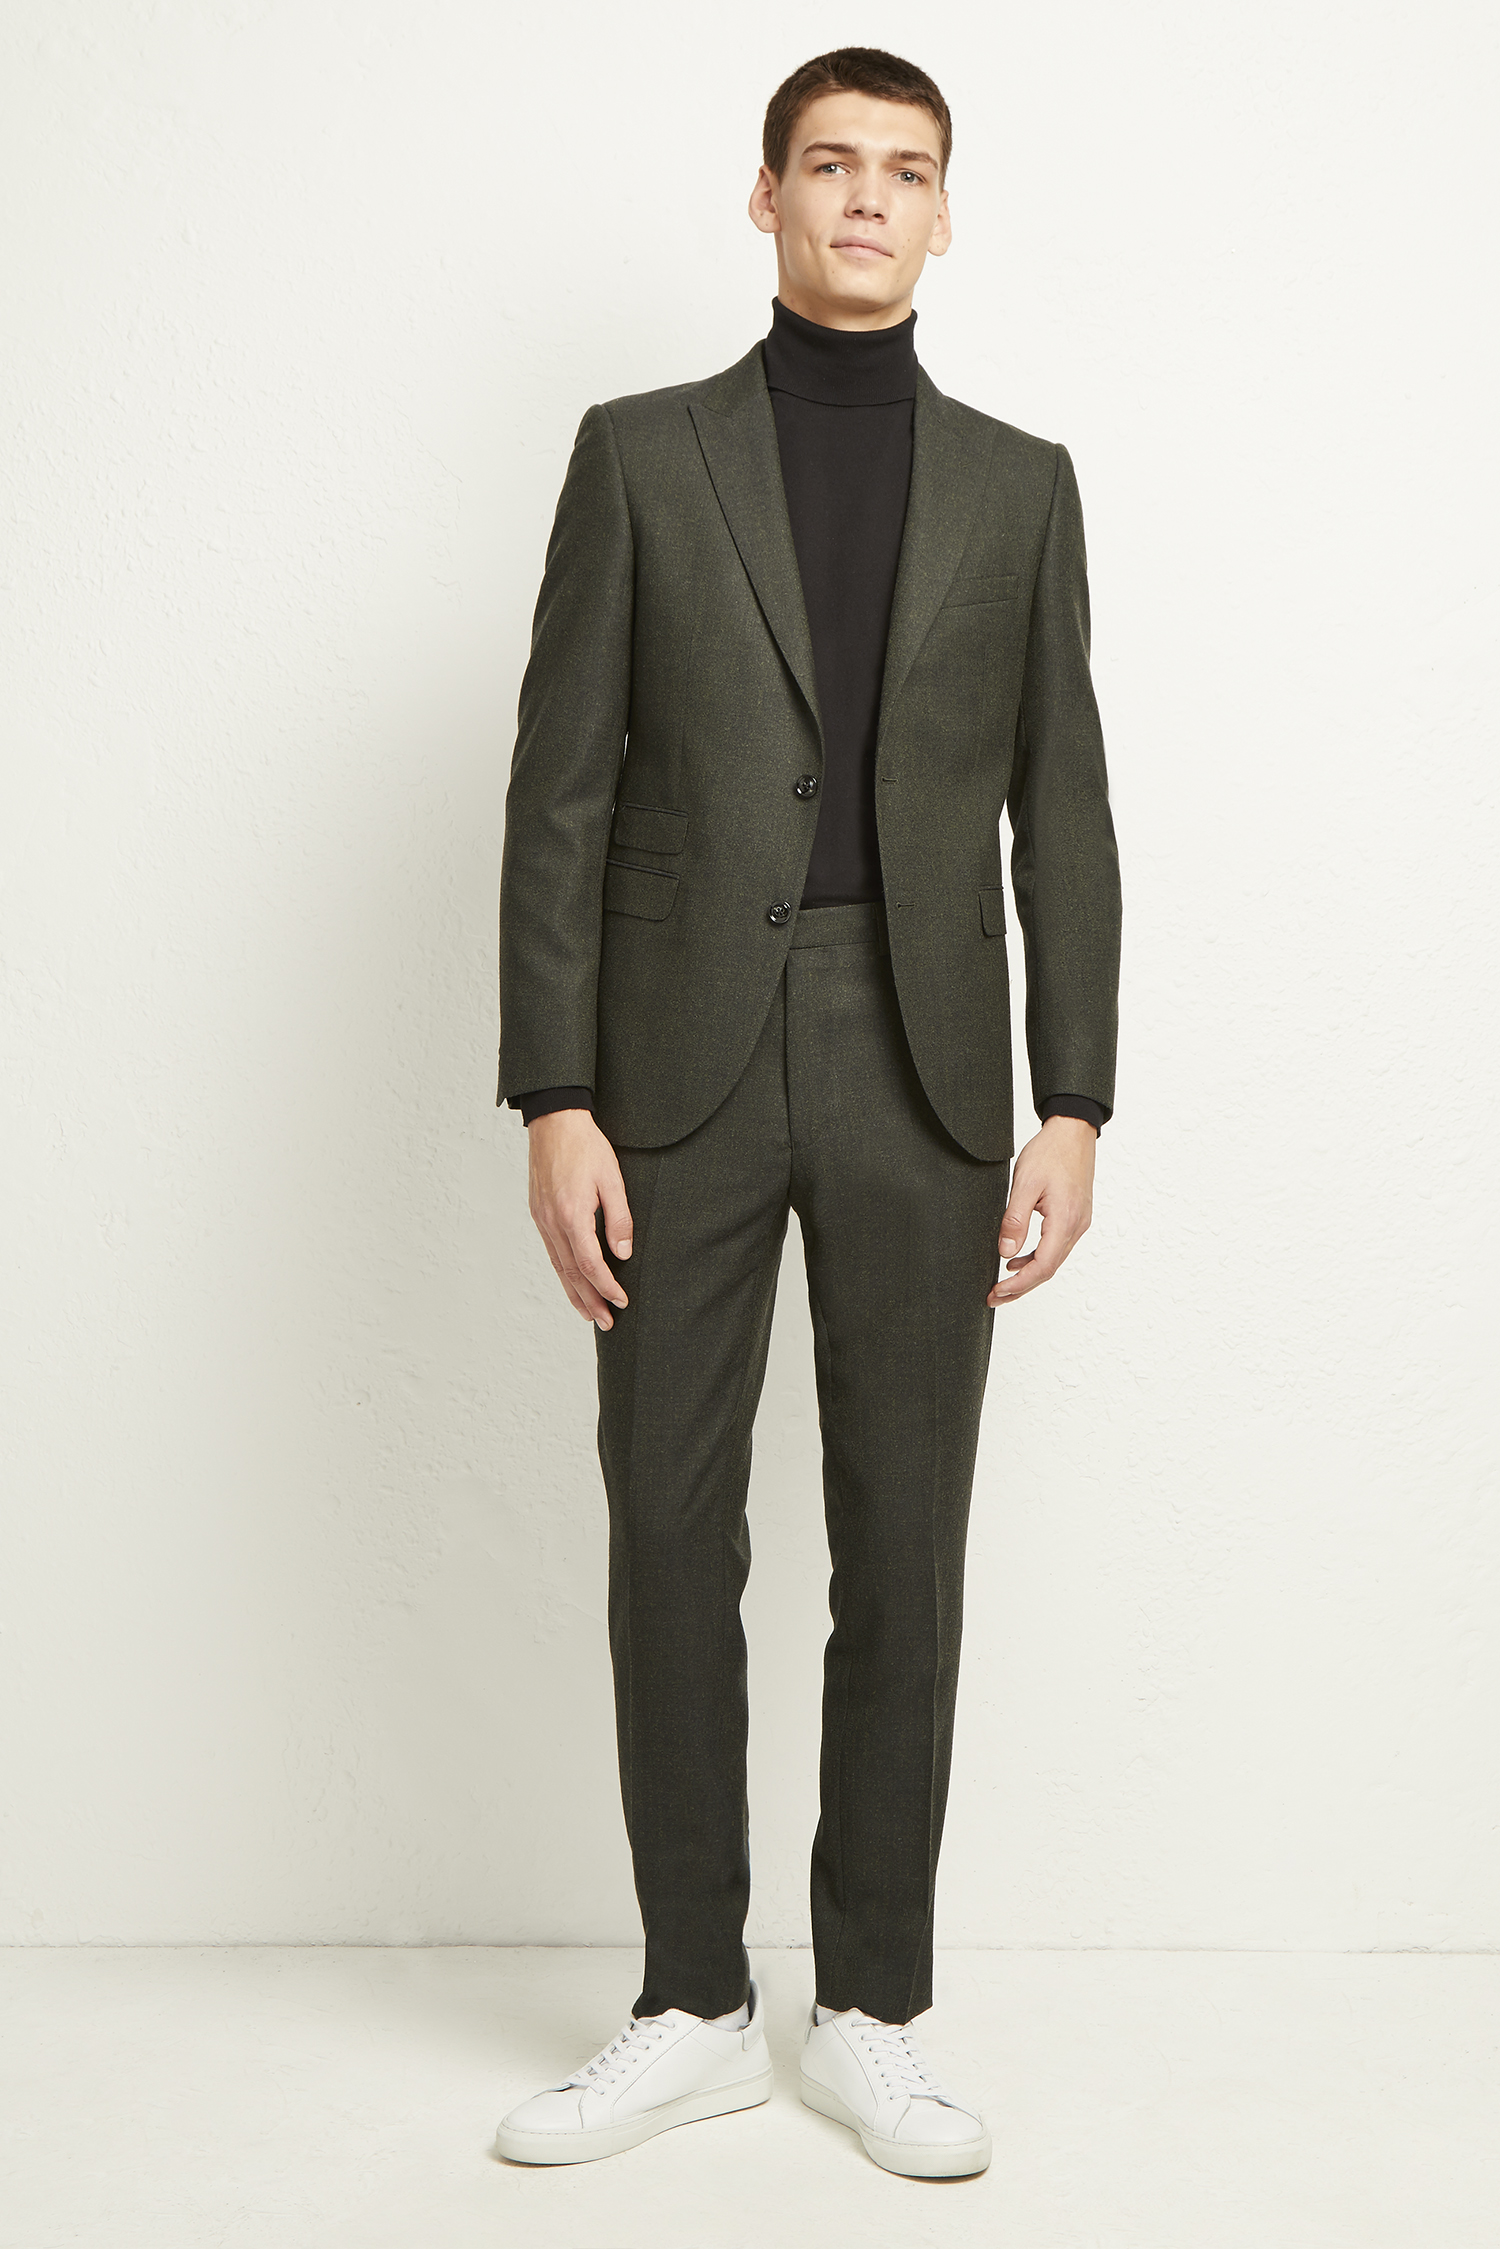 men's suits for winter weddings